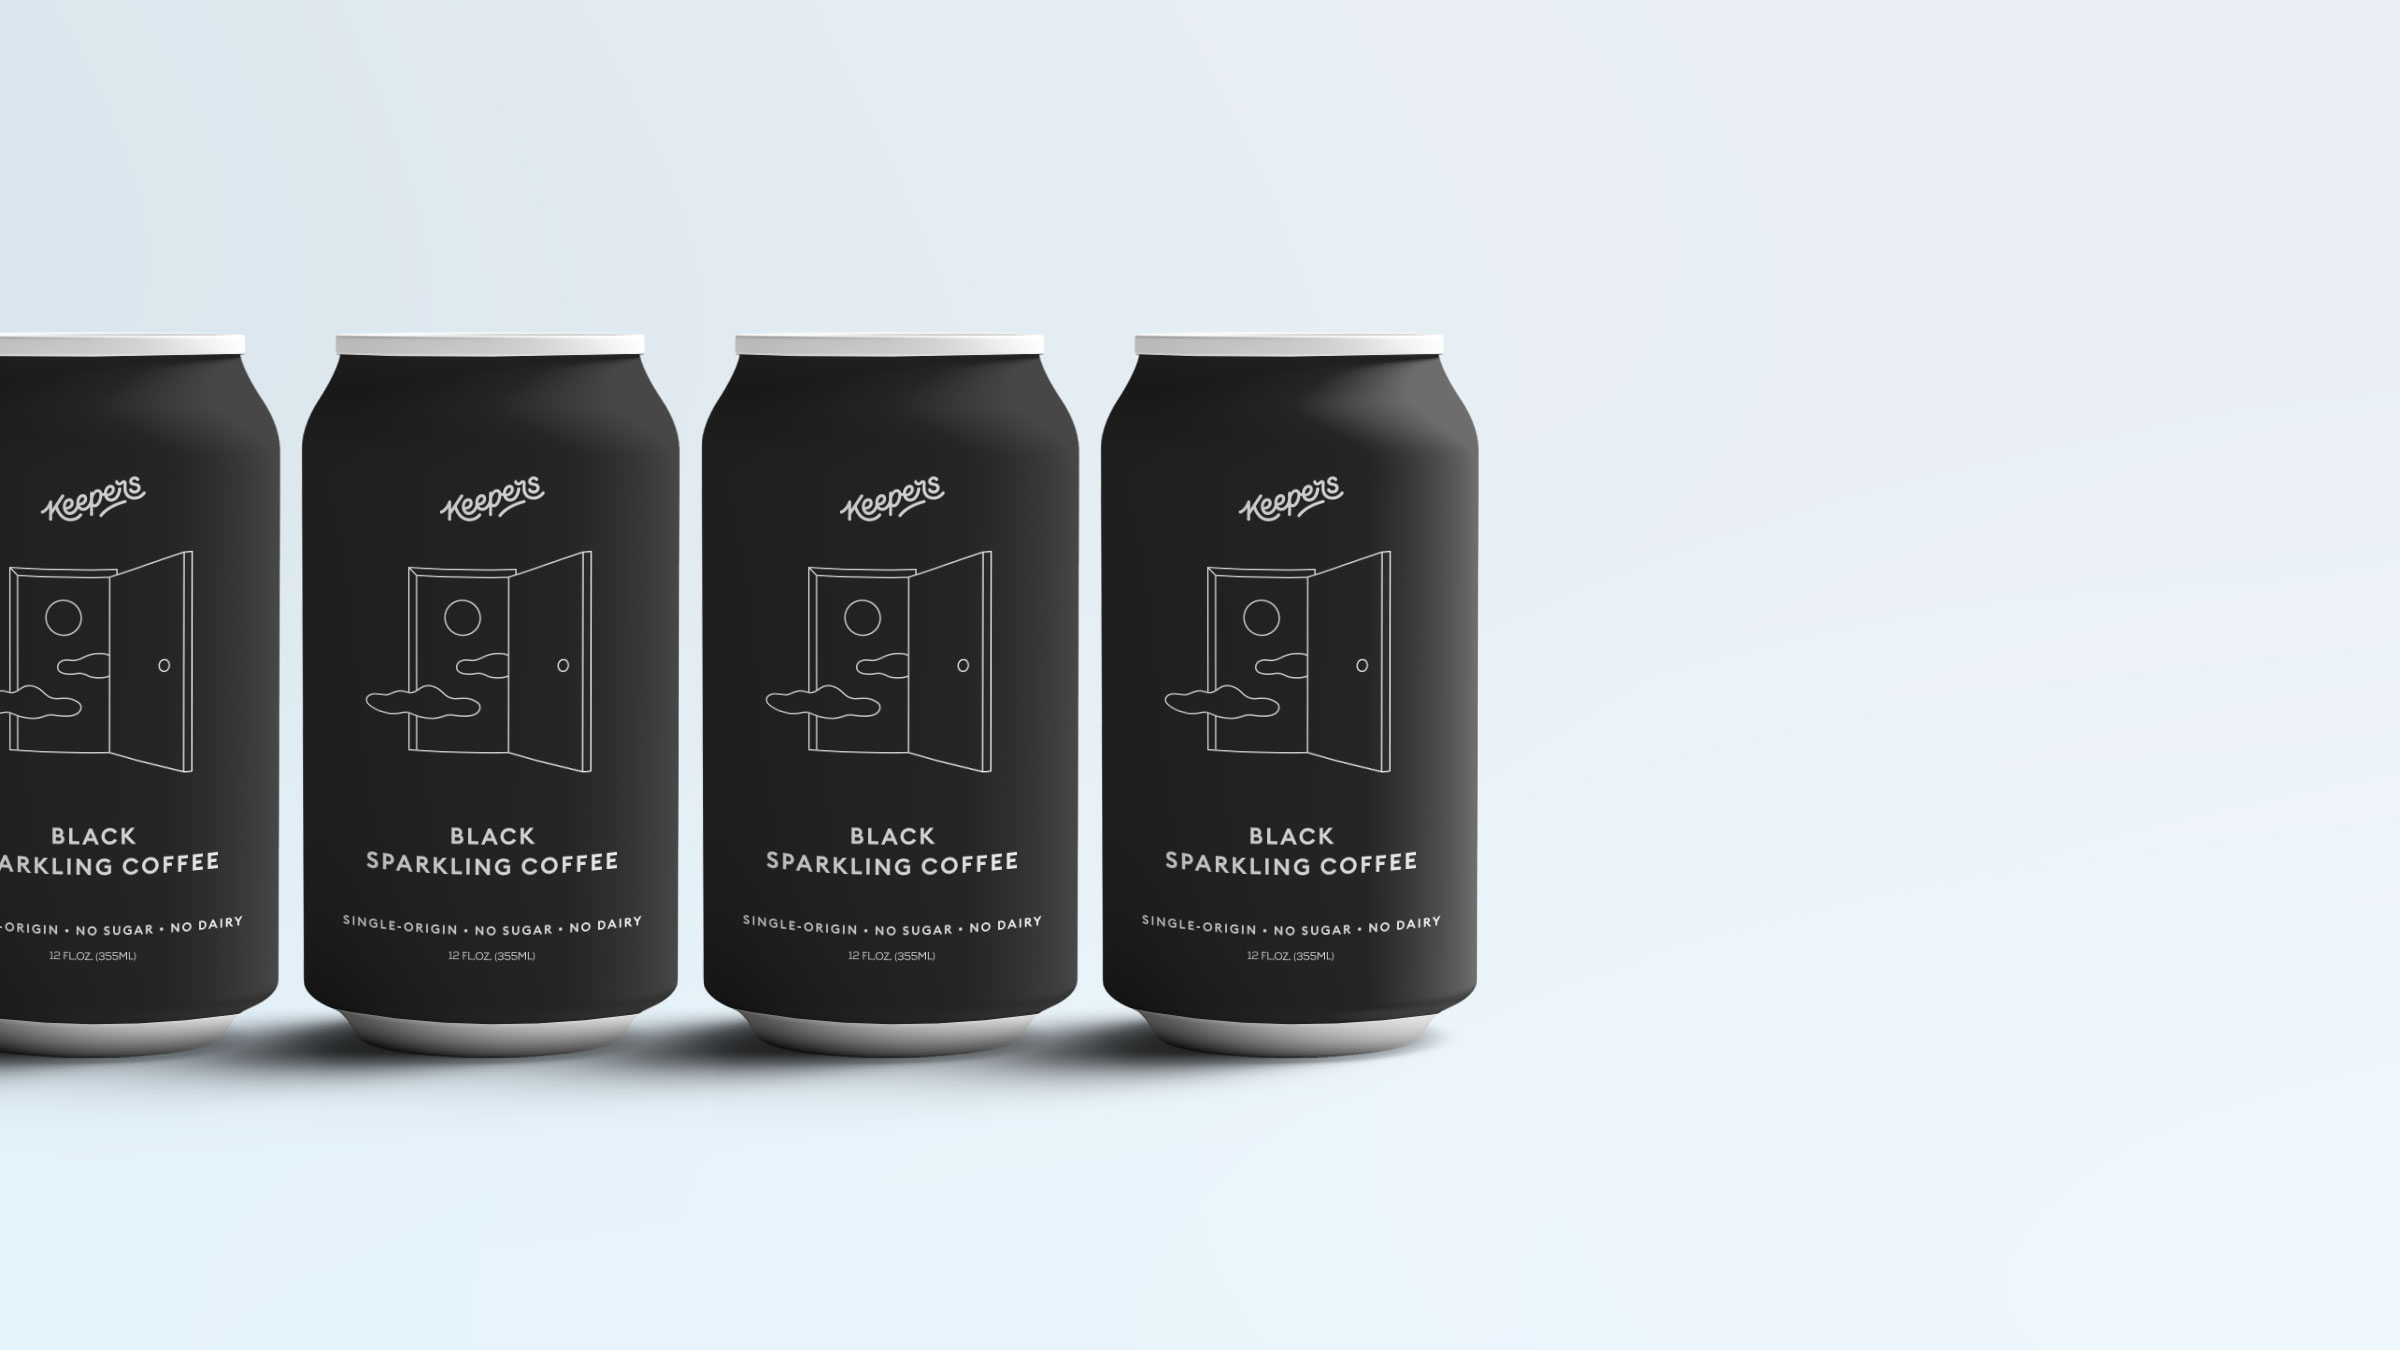 Packaging design for Keepers Black - CPG beverage cans looking sharp a.f.